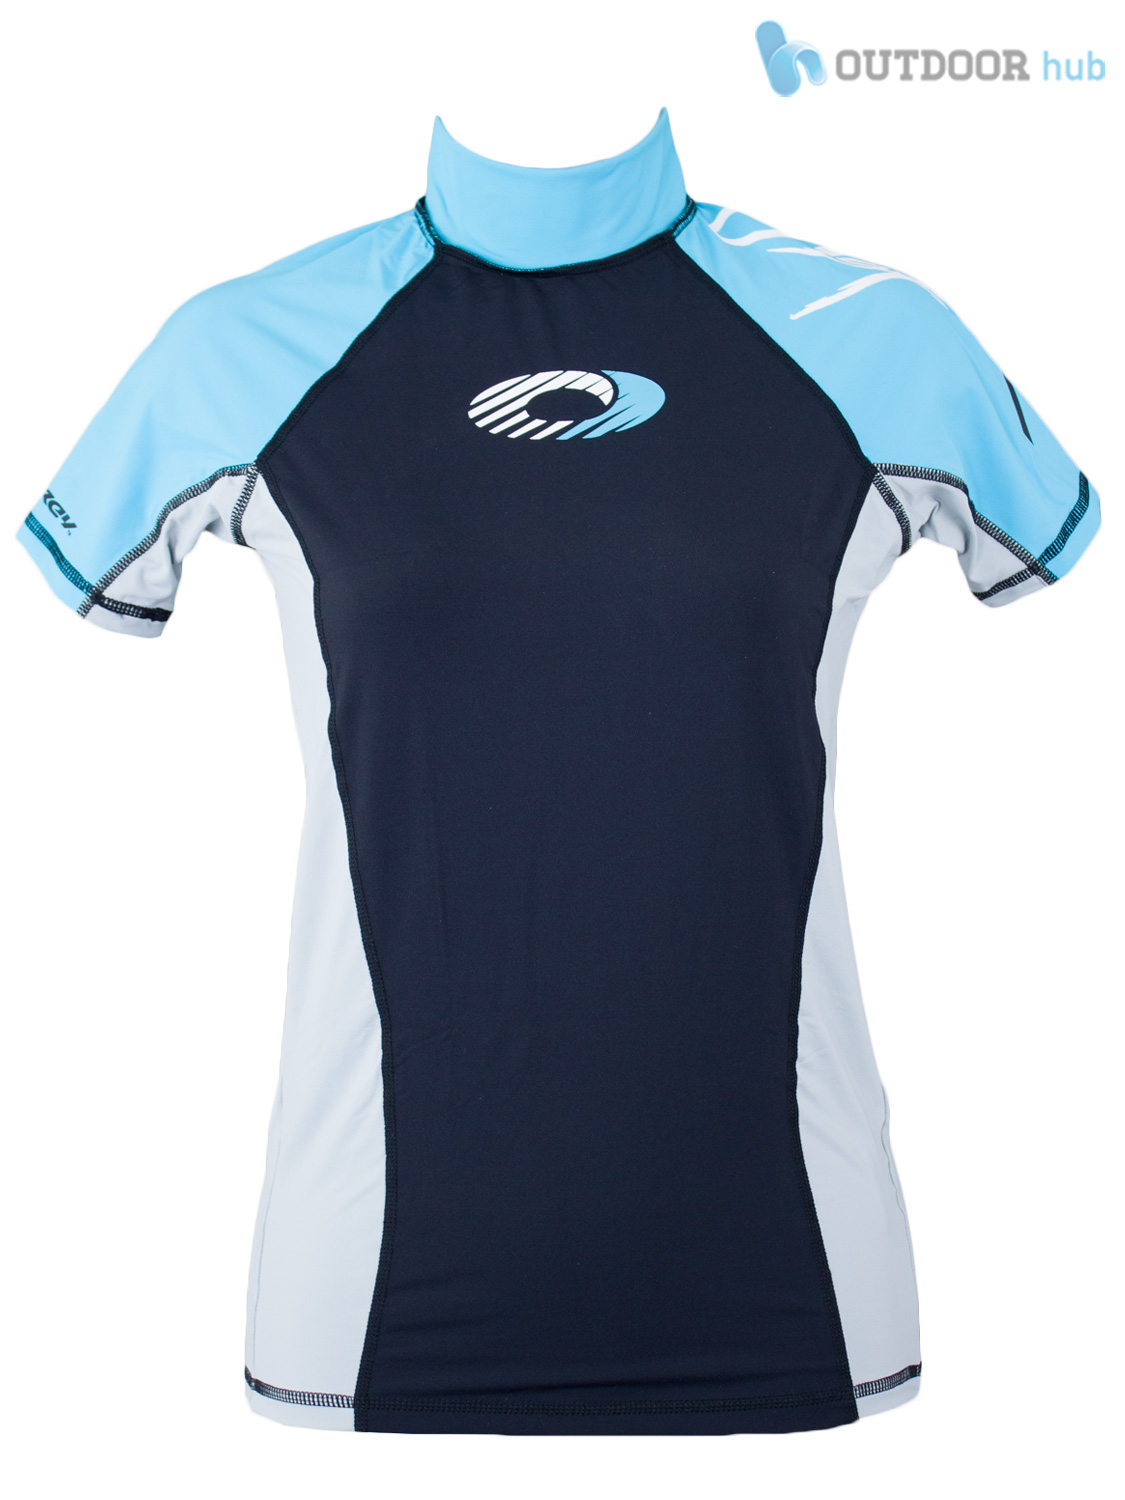 Osprey-Ladies-Short-Sleeve-Rash-Vest-Womens-Surf-T-Shirt-UV-50-Protection-Guard thumbnail 8